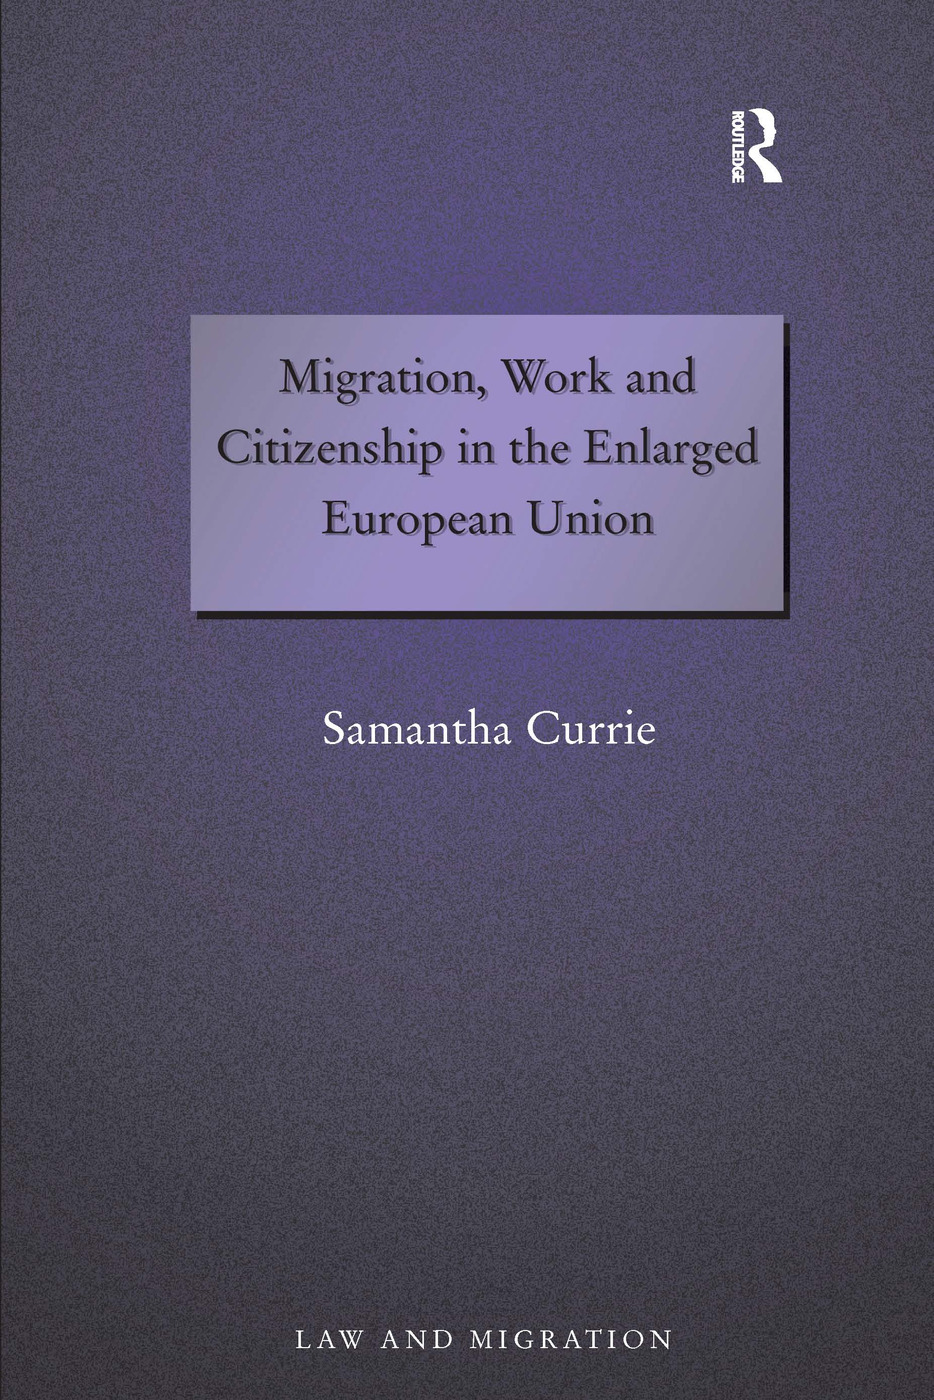 Migration, Work and Citizenship in the Enlarged European Union book cover